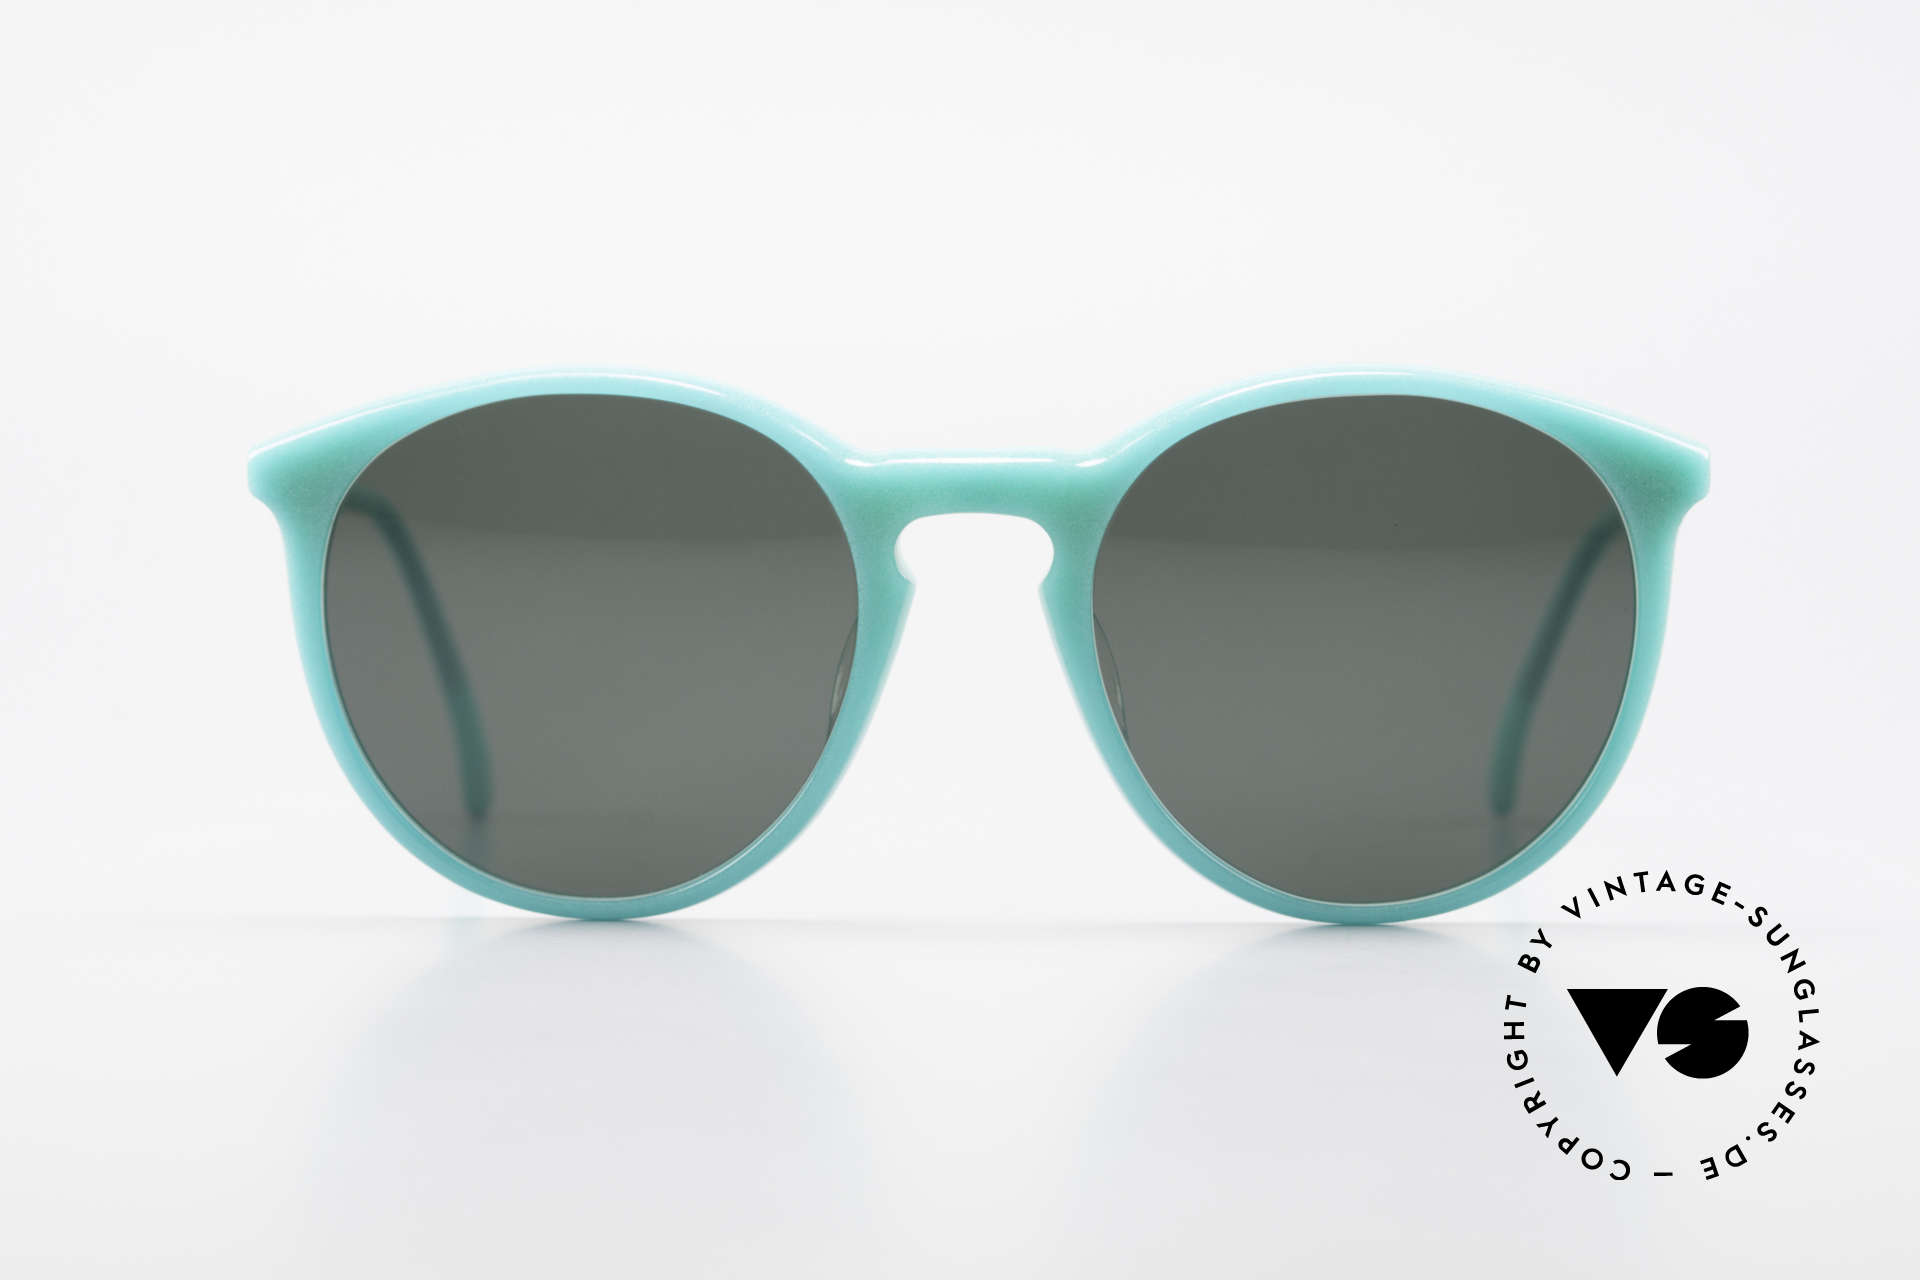 Alain Mikli 901 / 079 Green Pearl Panto Sunglasses, classic 'panto'-design with dark green sun lenses, Made for Men and Women